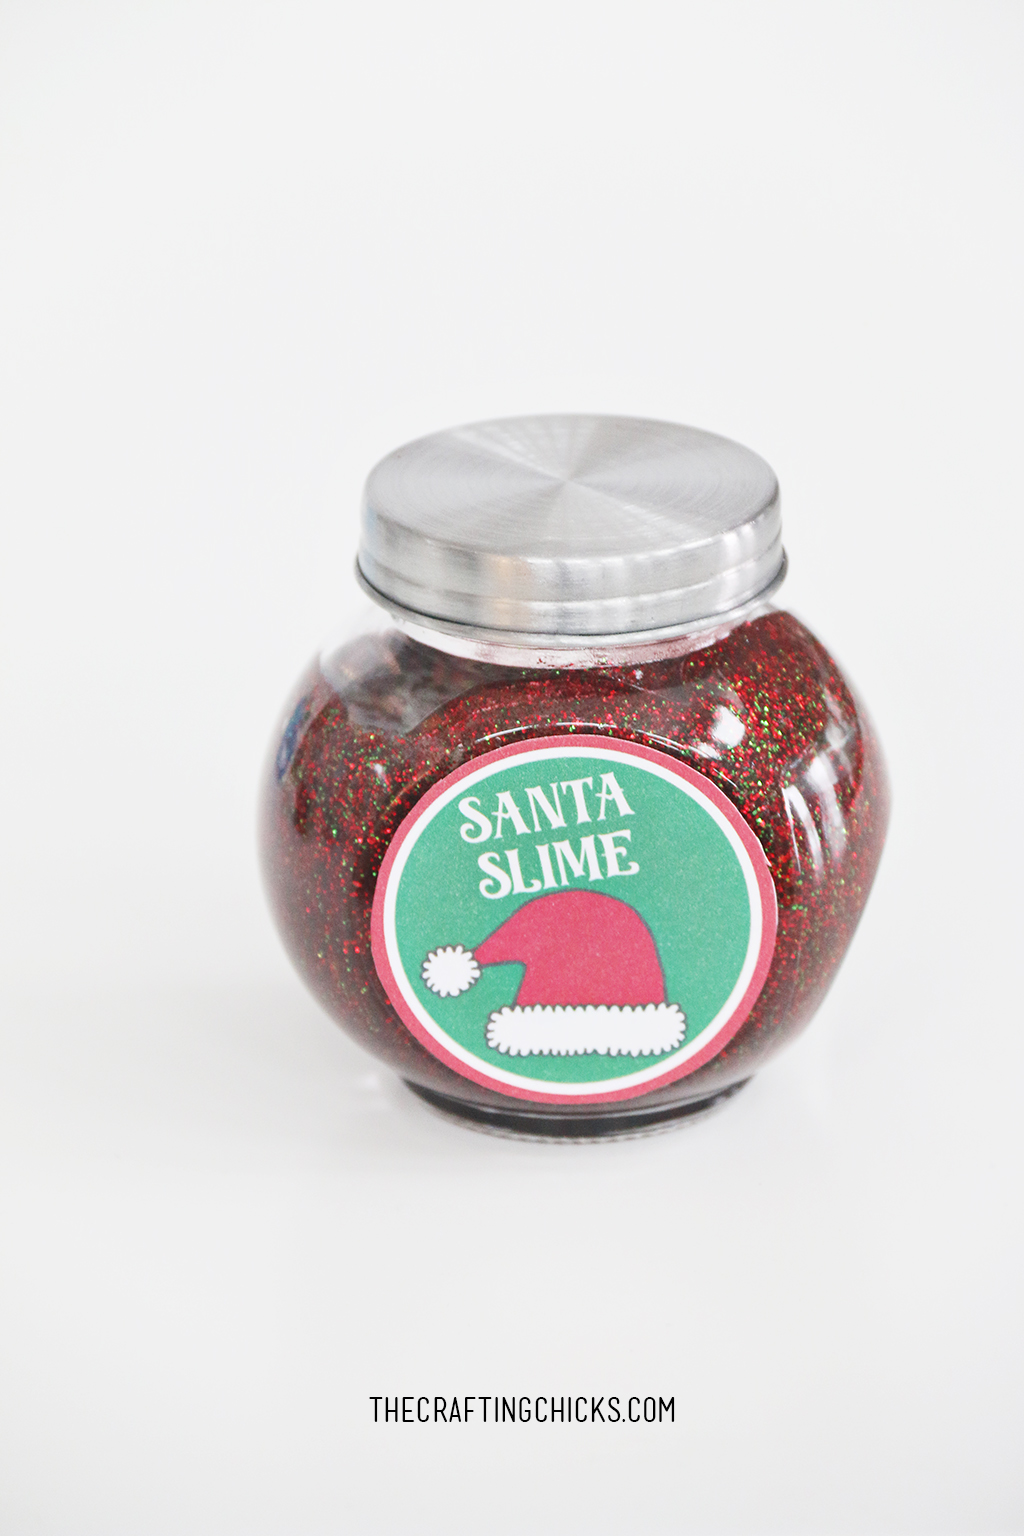 Santa Slime in a small glass jar with lid